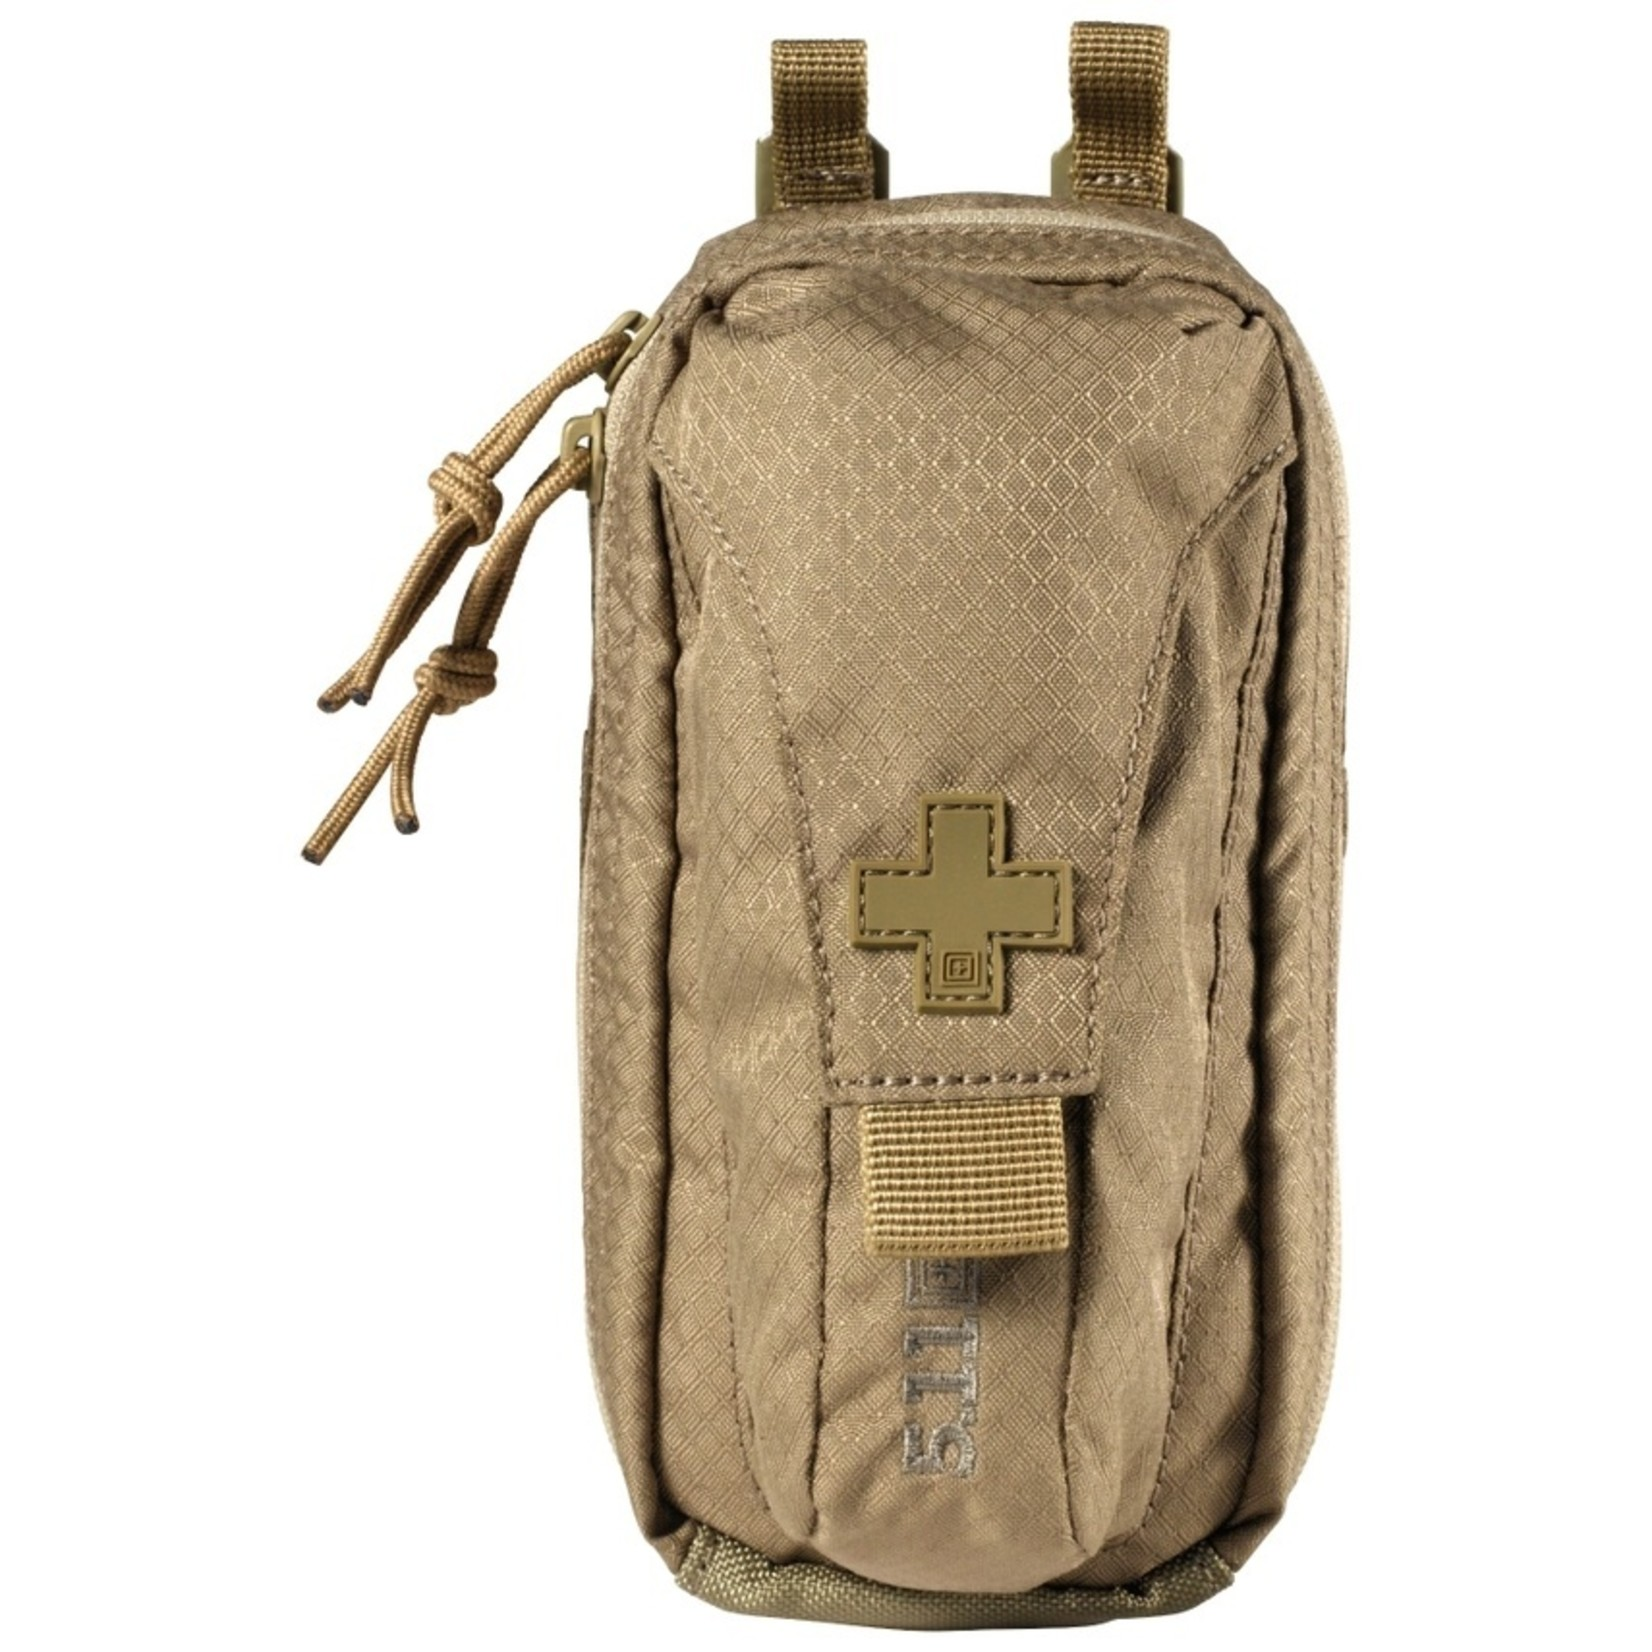 5.11 Tactical 5.11 Ignitor Med Pouch-sandstone